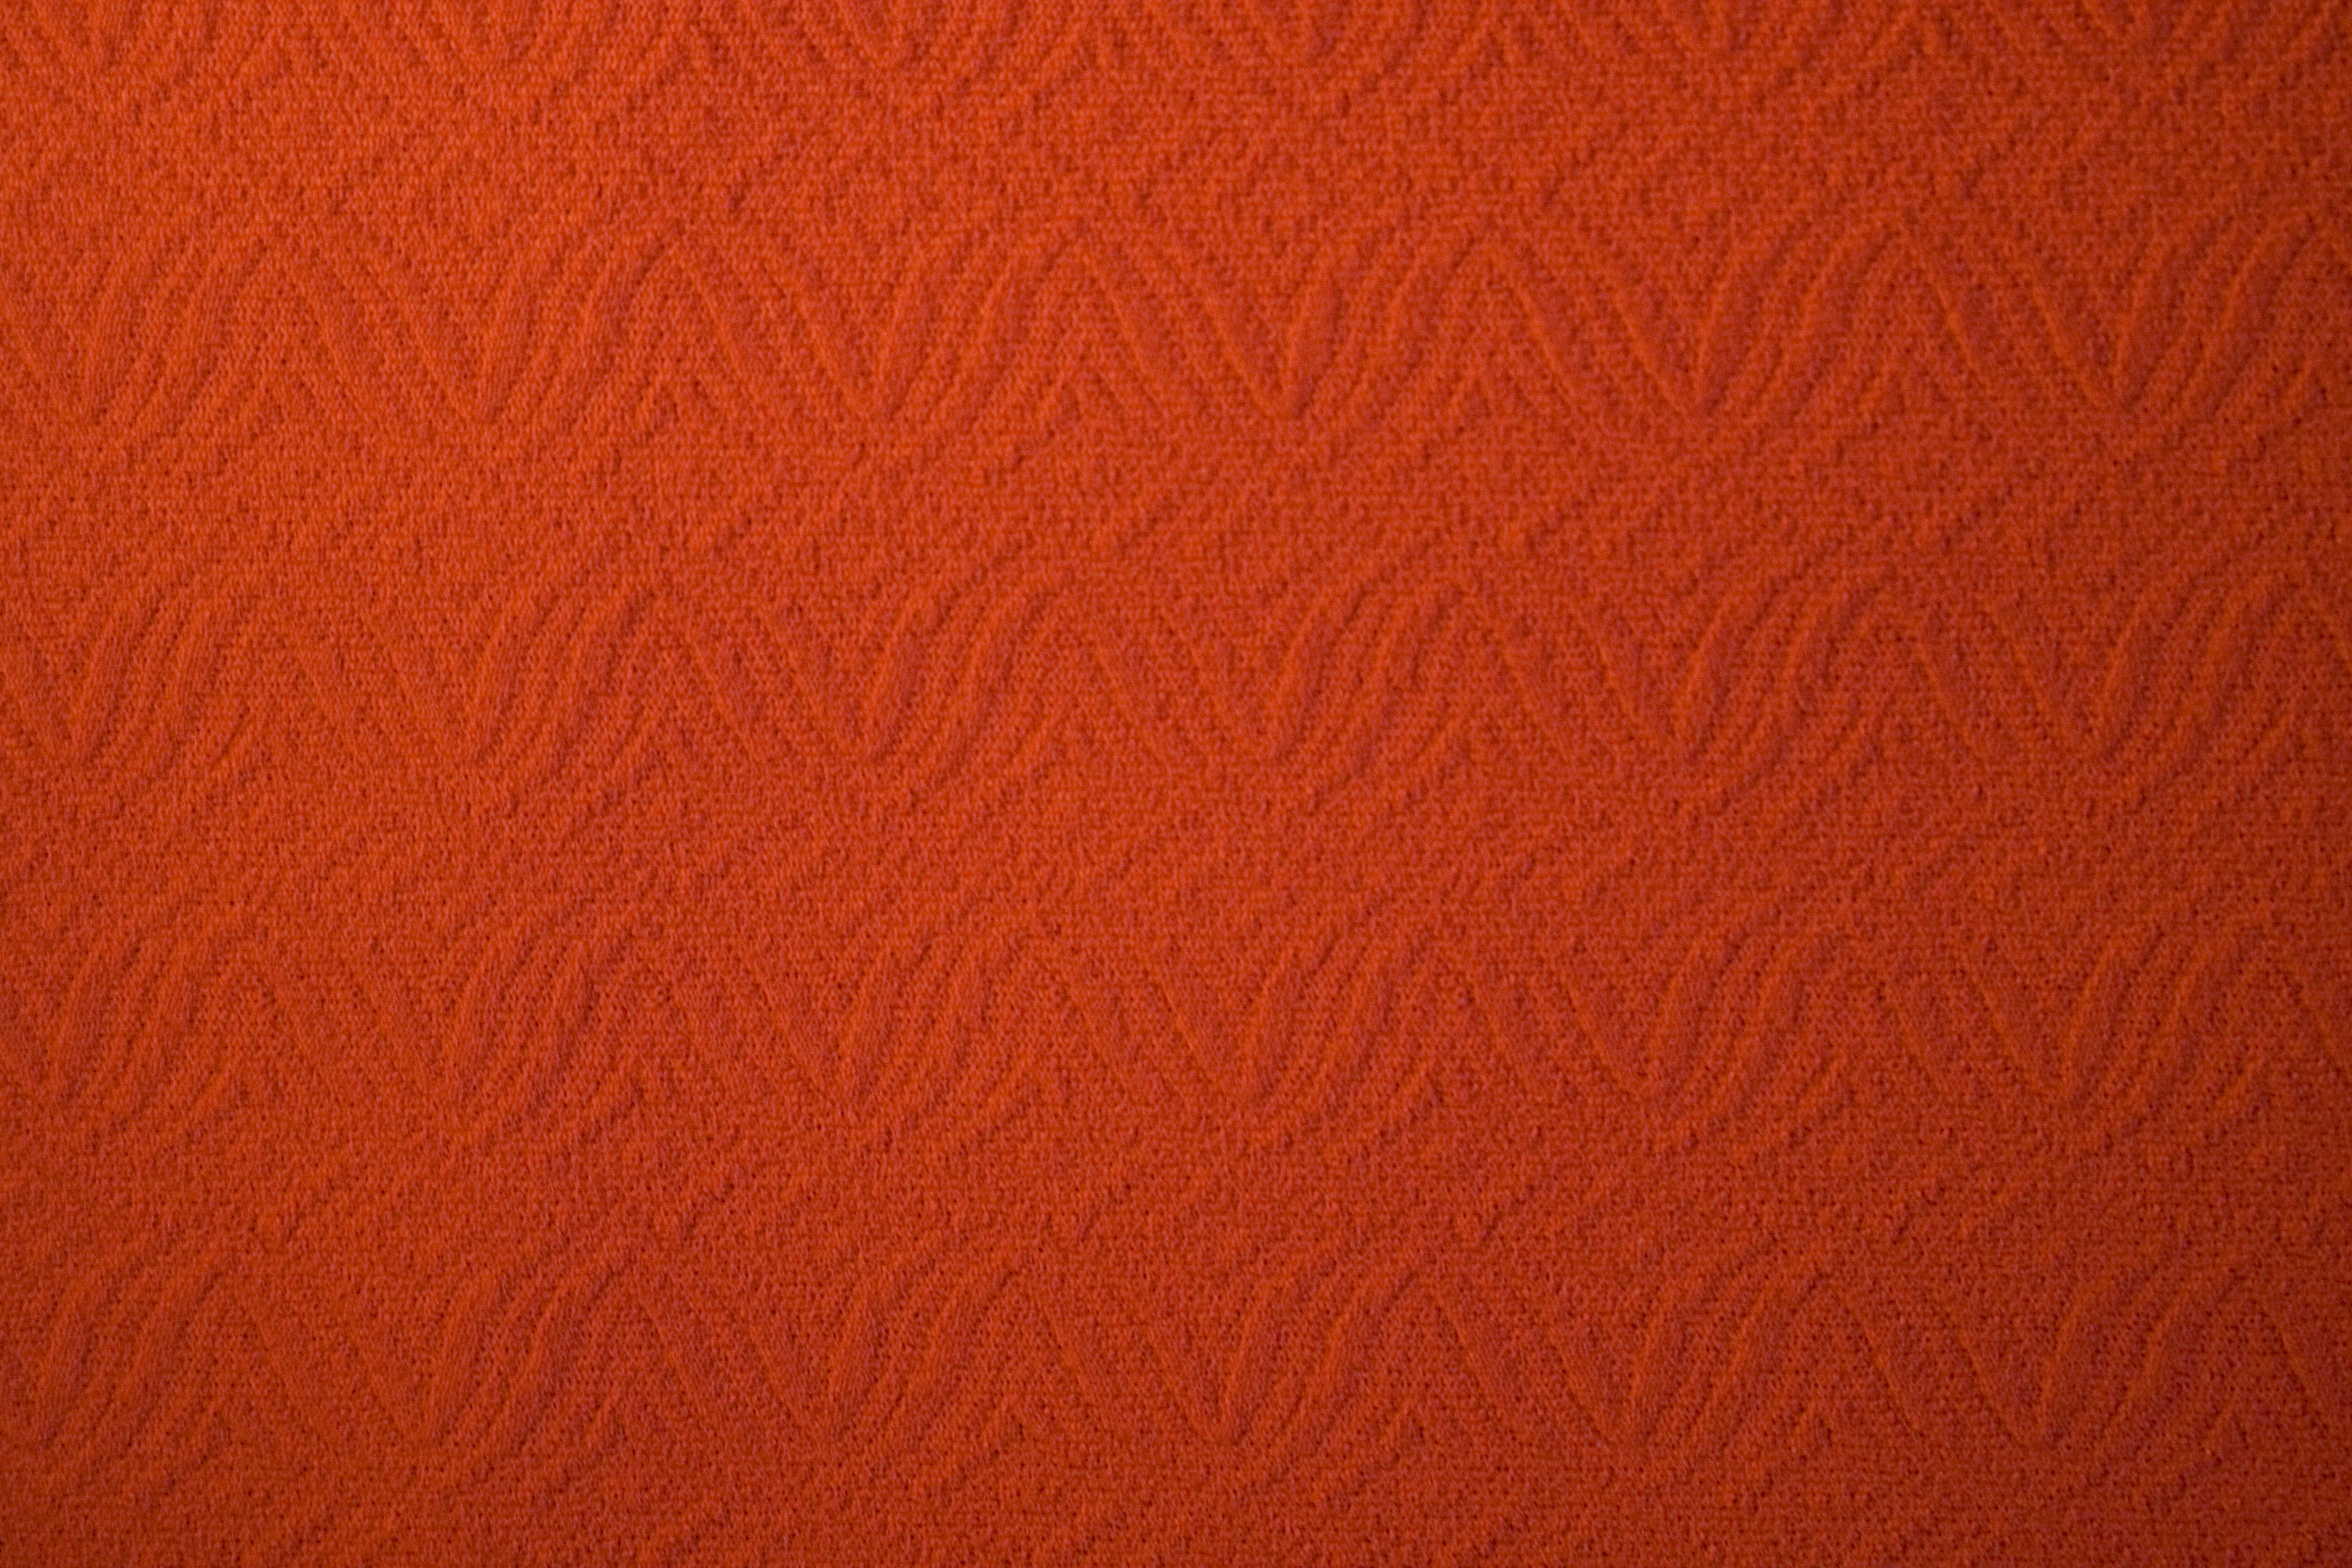 Orange Textile Texture With Patterns Textures For